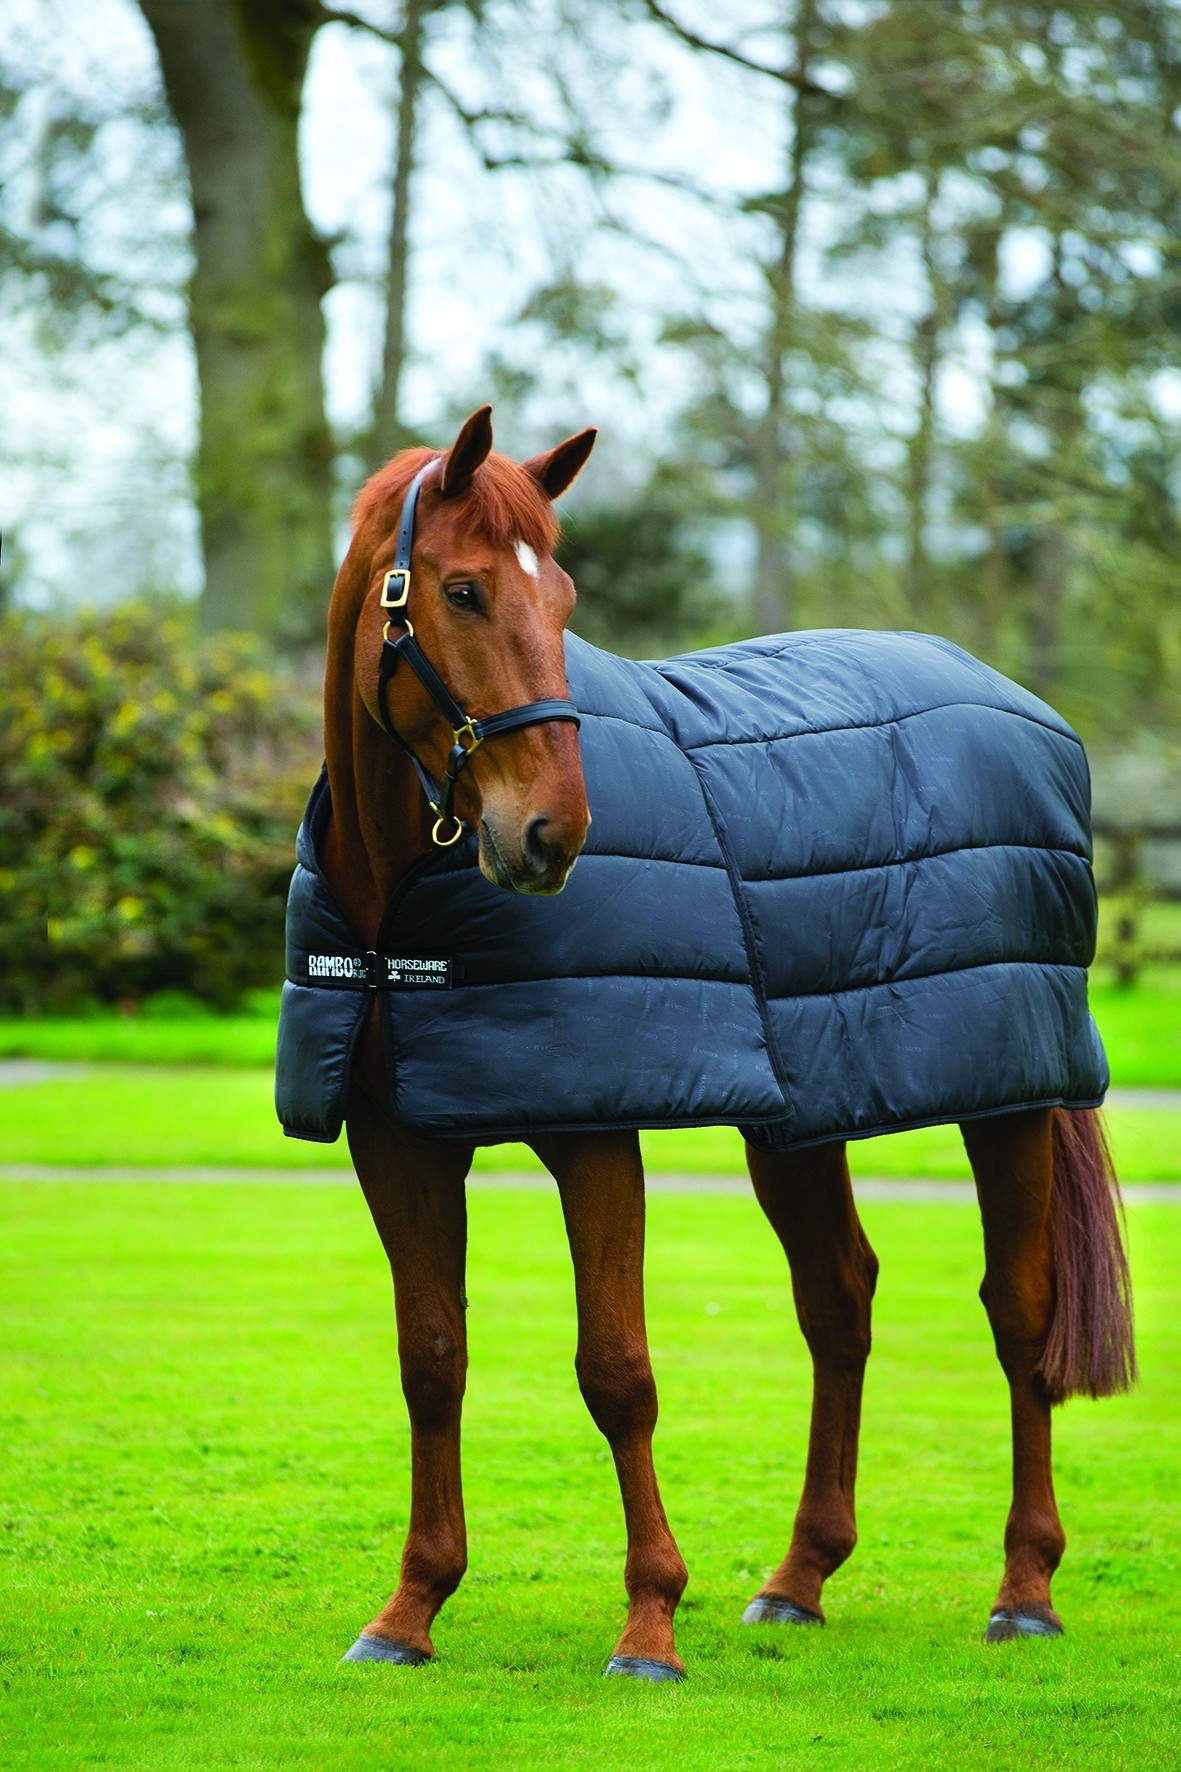 Horseware Optimo 400g Liner  - Thomas Irving's equestrian and accessories store  Horseware Optimo 400g Liner